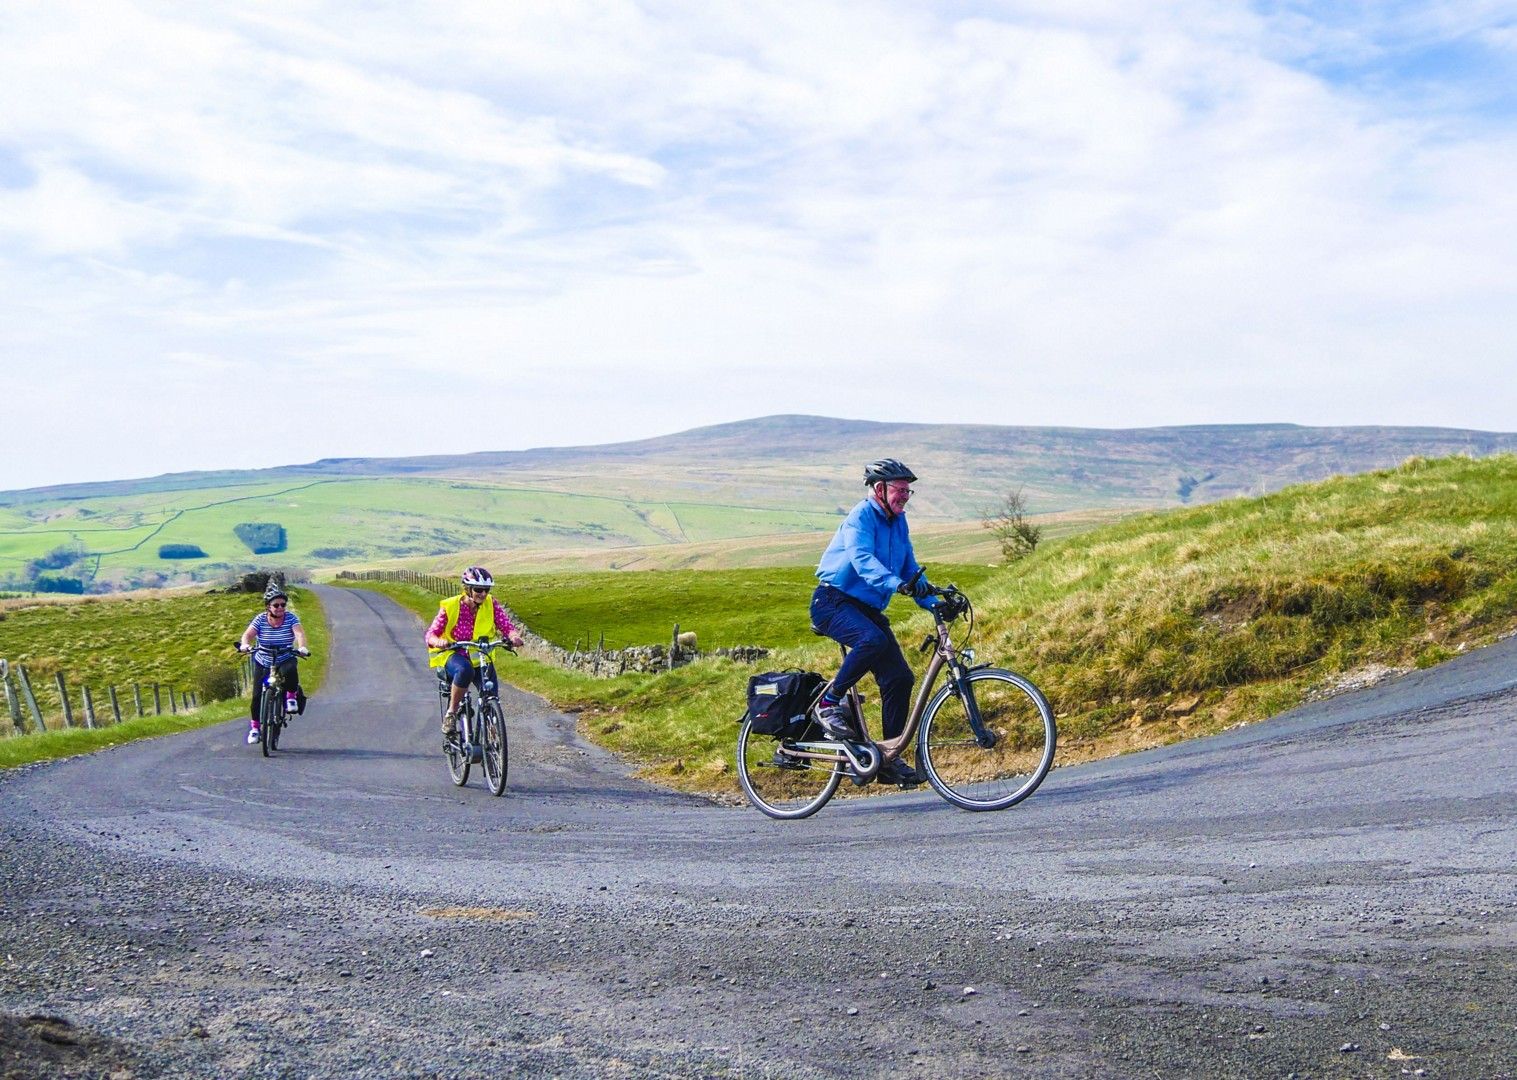 tour-for-all-ages-skedaddle-england-bike-holiday-amazing-experiences.jpg - UK - C2C - Coast to Coast - Supported Leisure Cycling Holiday - Family Cycling